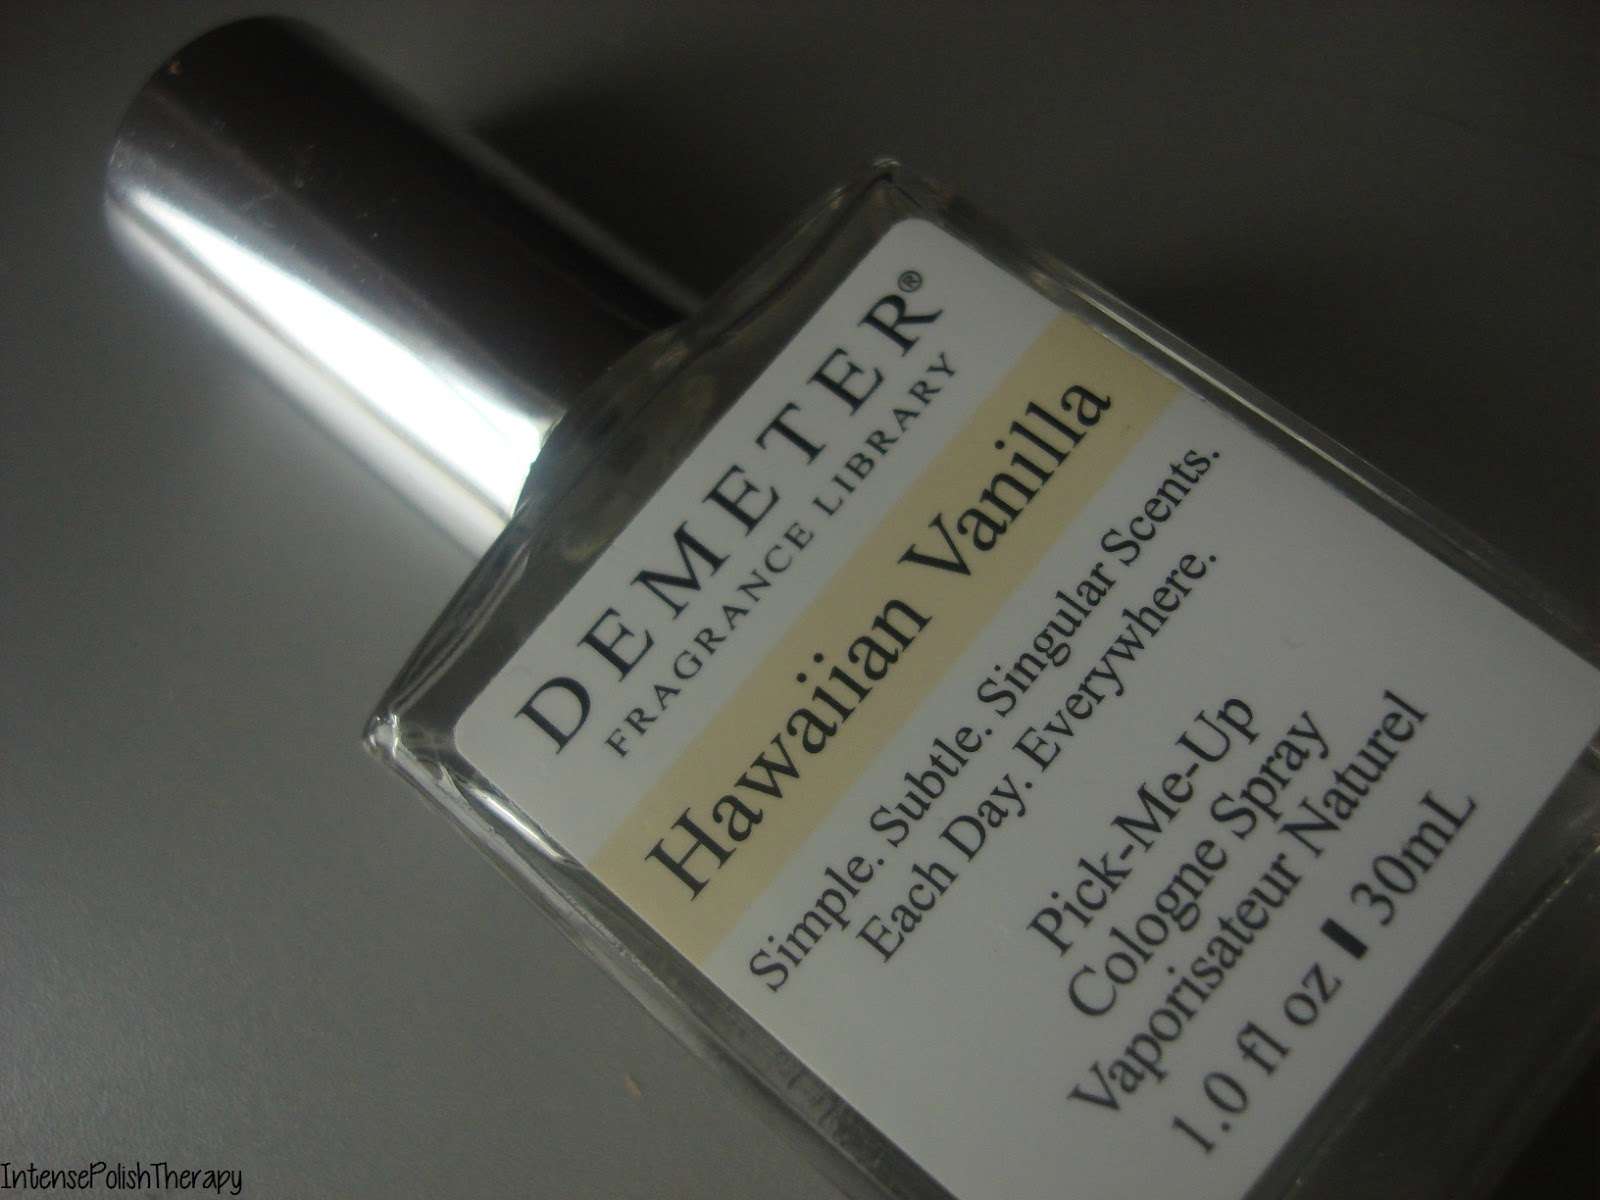 Demeter Fragrance Library - Hawaiian Vanilla